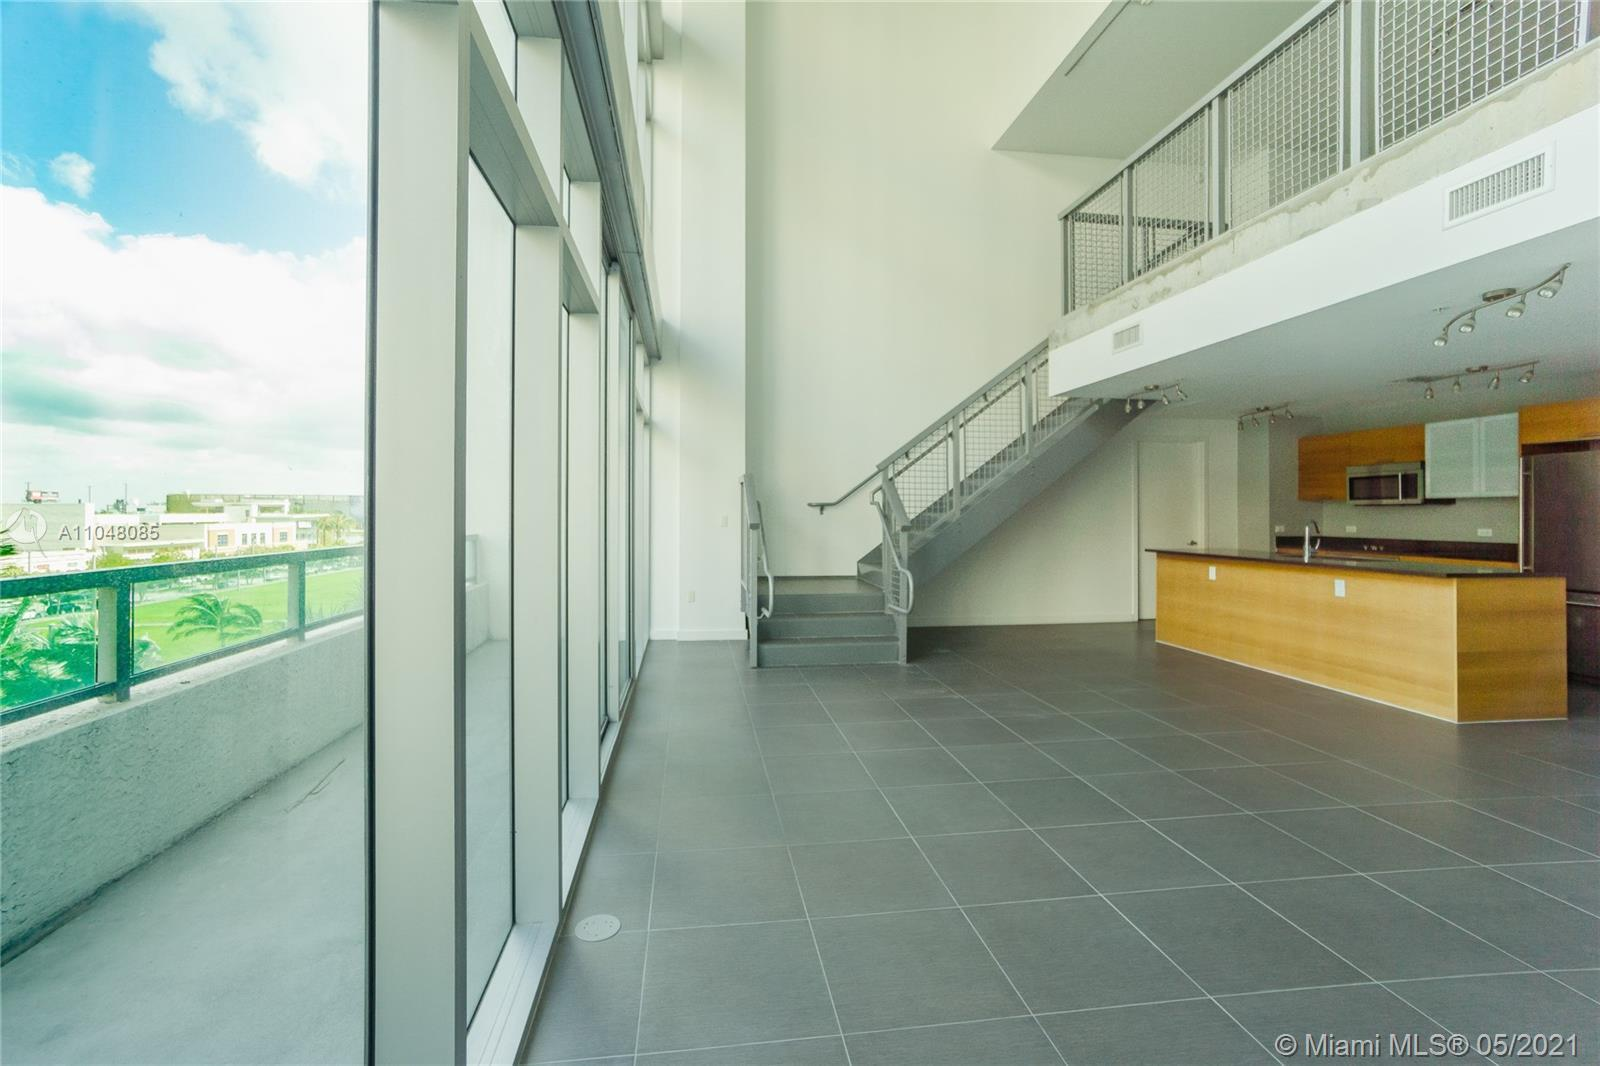 Spectacular 2-Story in the heart of Midtown. Over 1,500 SqFt of living area, the 1 bed + den urban s